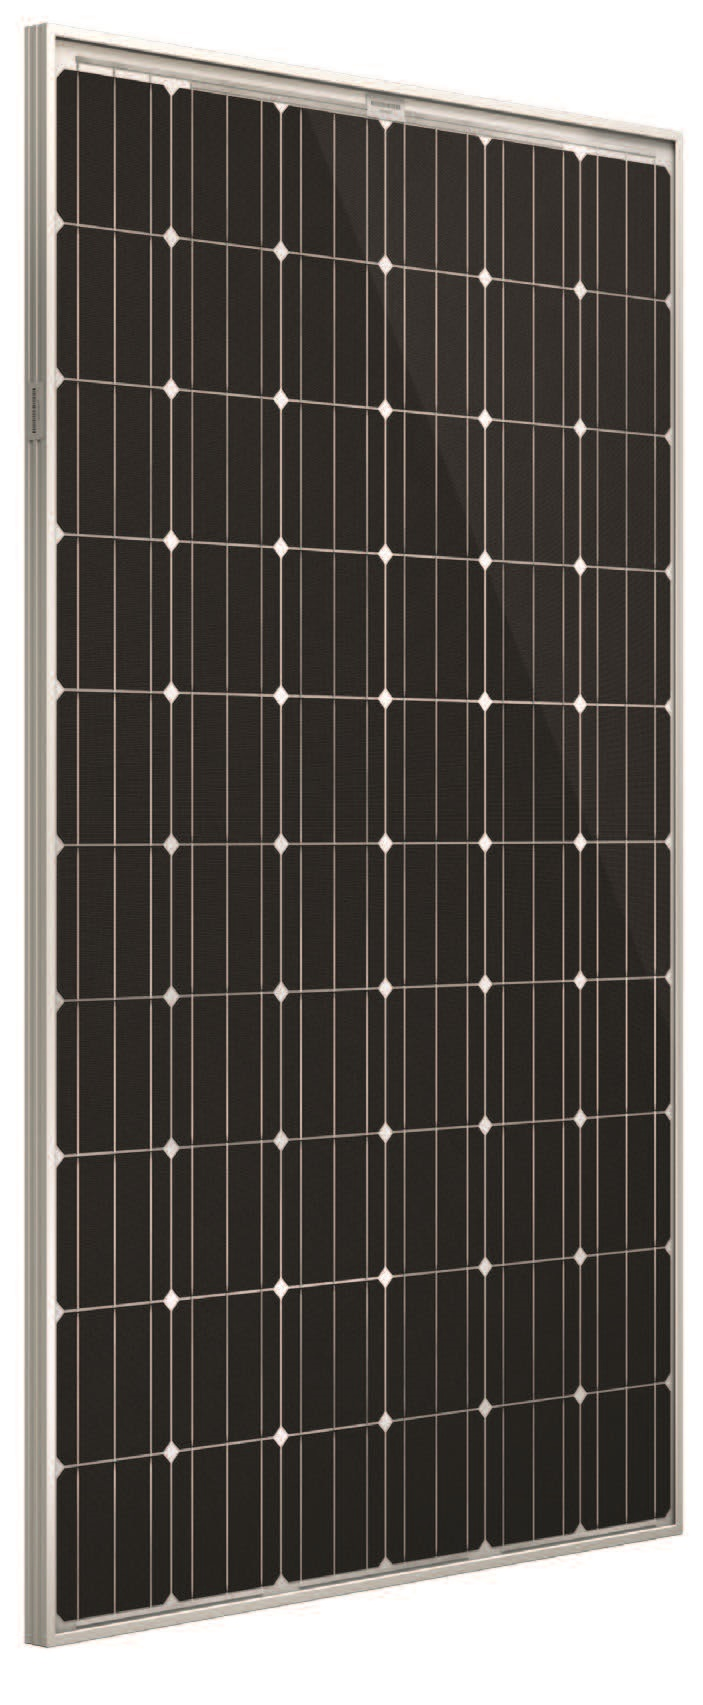 Aleo Solar module aleo P19 285 - 290 - 295 W Mono / Efficiency 18.0